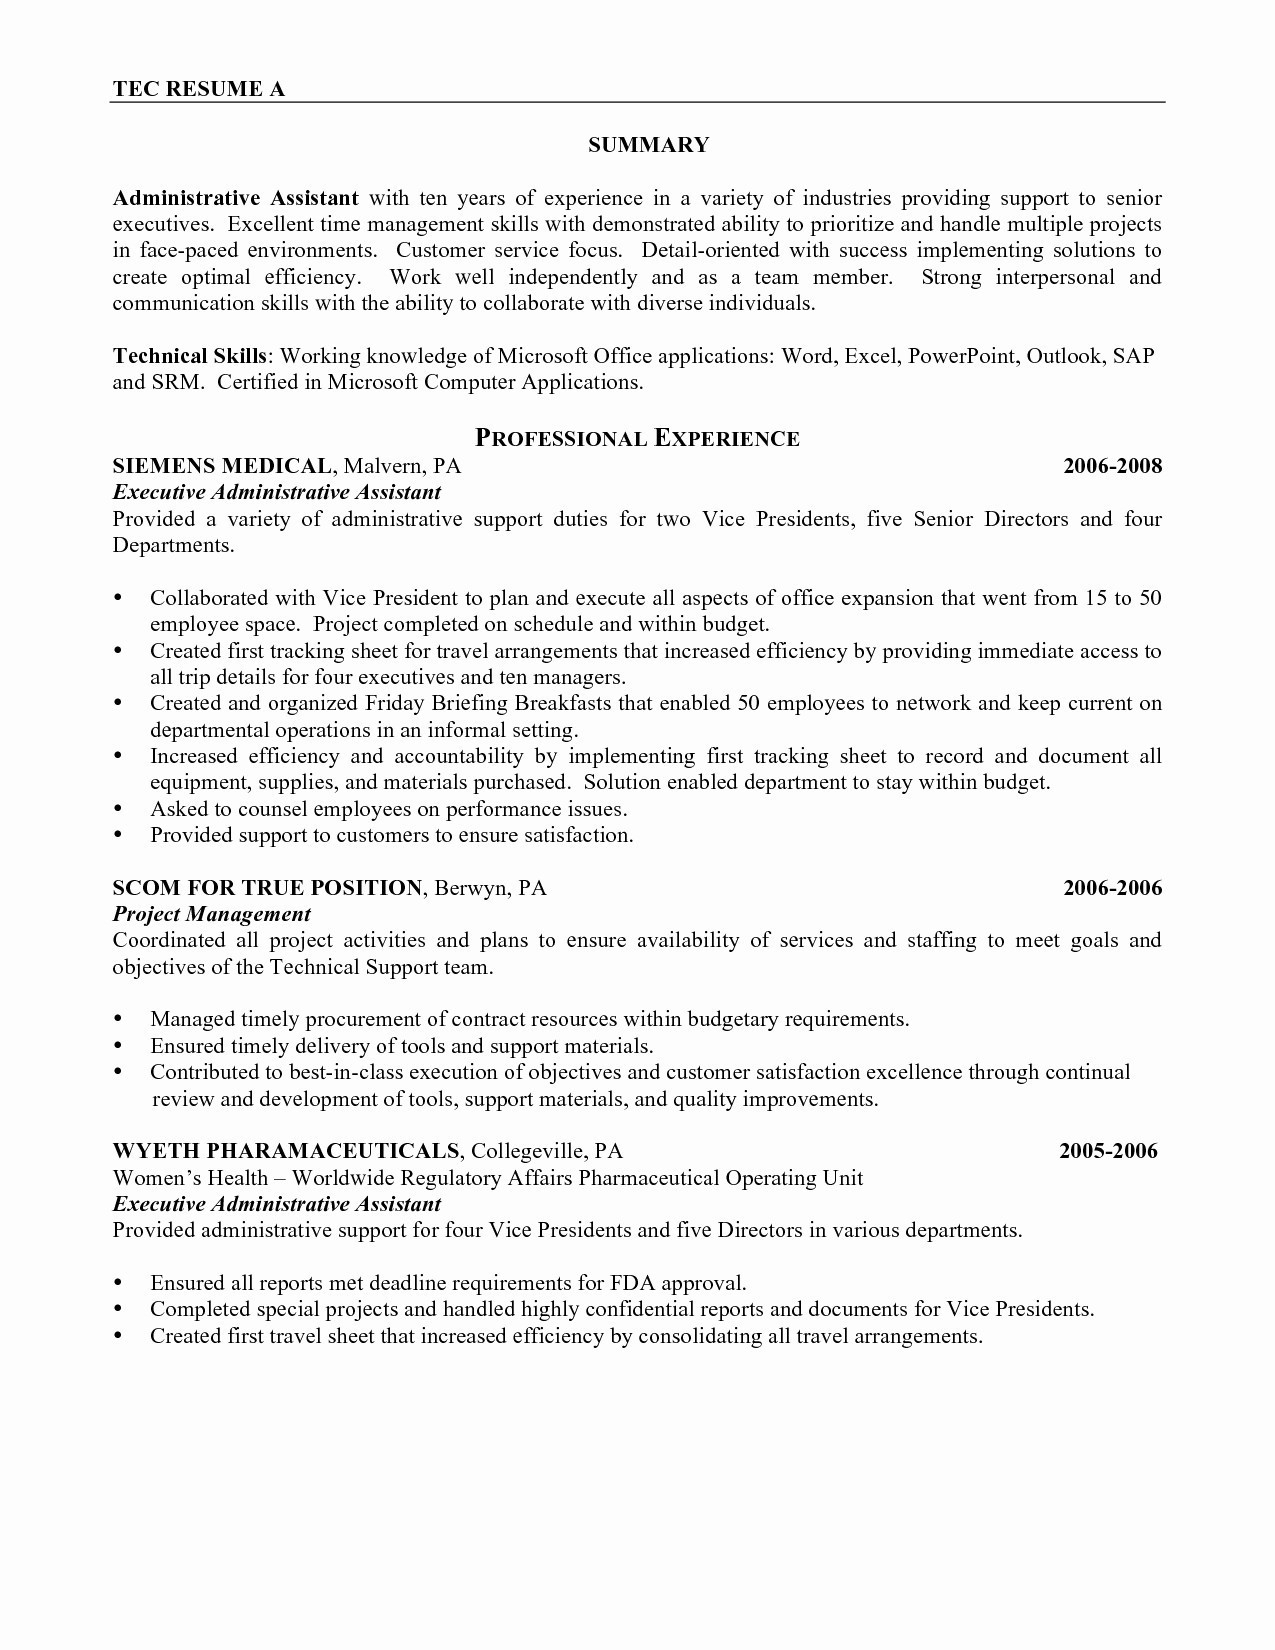 Executive Personal assistant Job Description Resume - Personal assistant Cover Letter Template Gallery